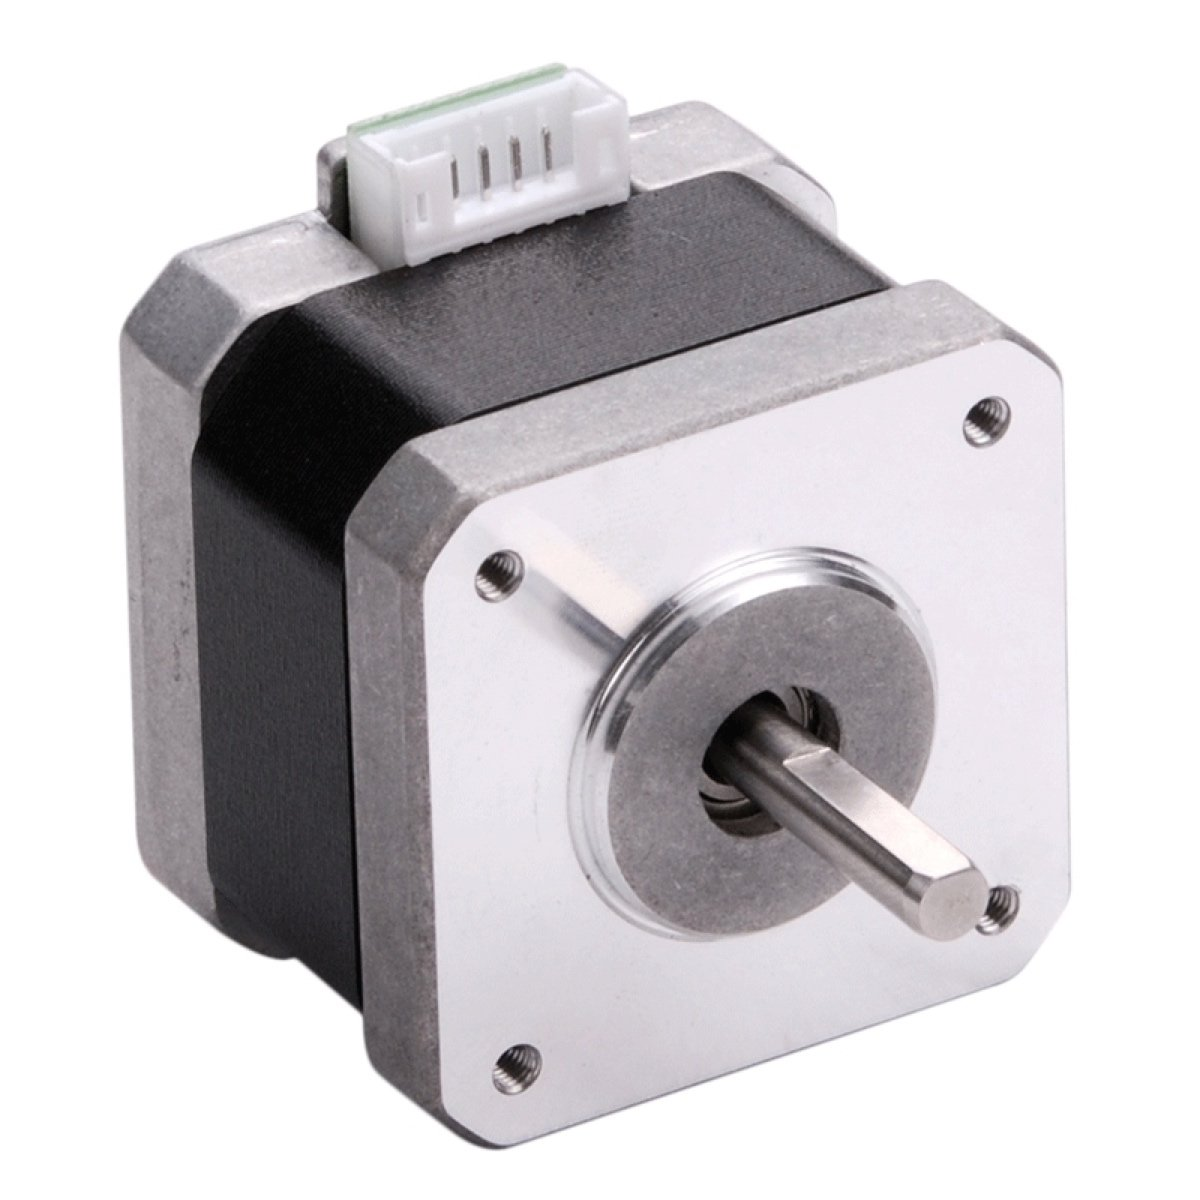 Image of Moons stepper motor - Nema17 - 42mm